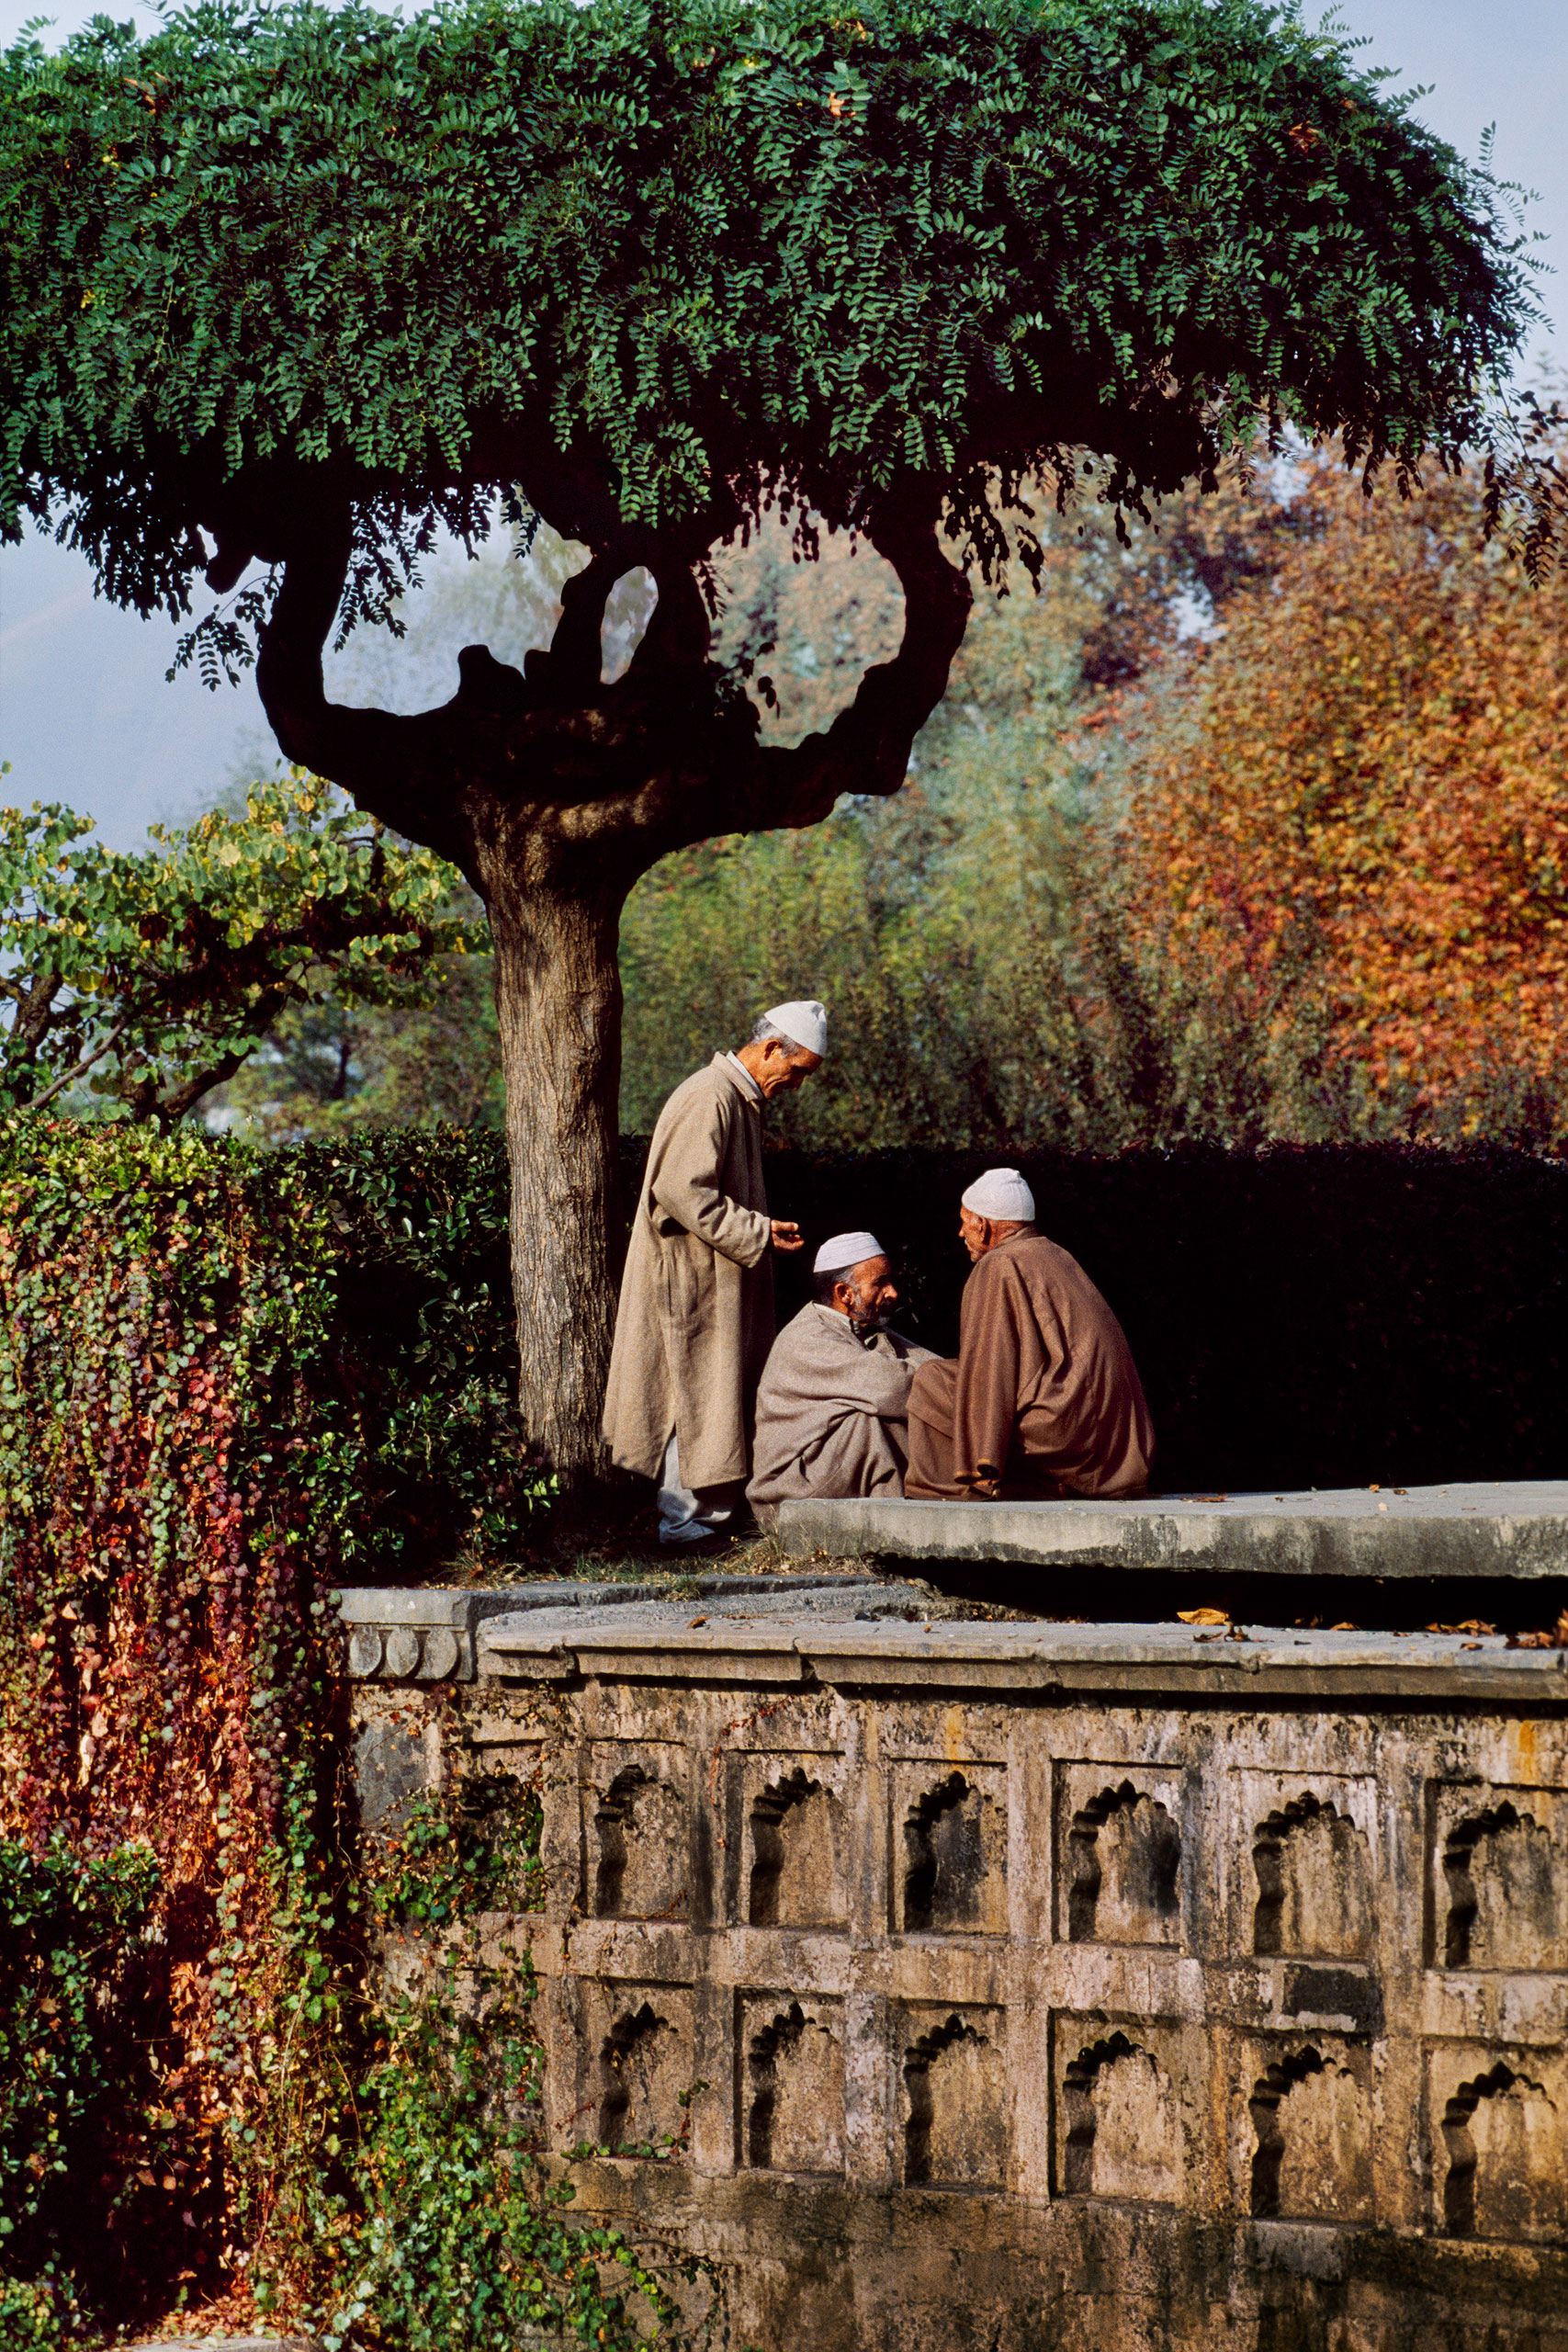 Three friends in Shalimar Gardens. Srinagar, Kashmir, 1998